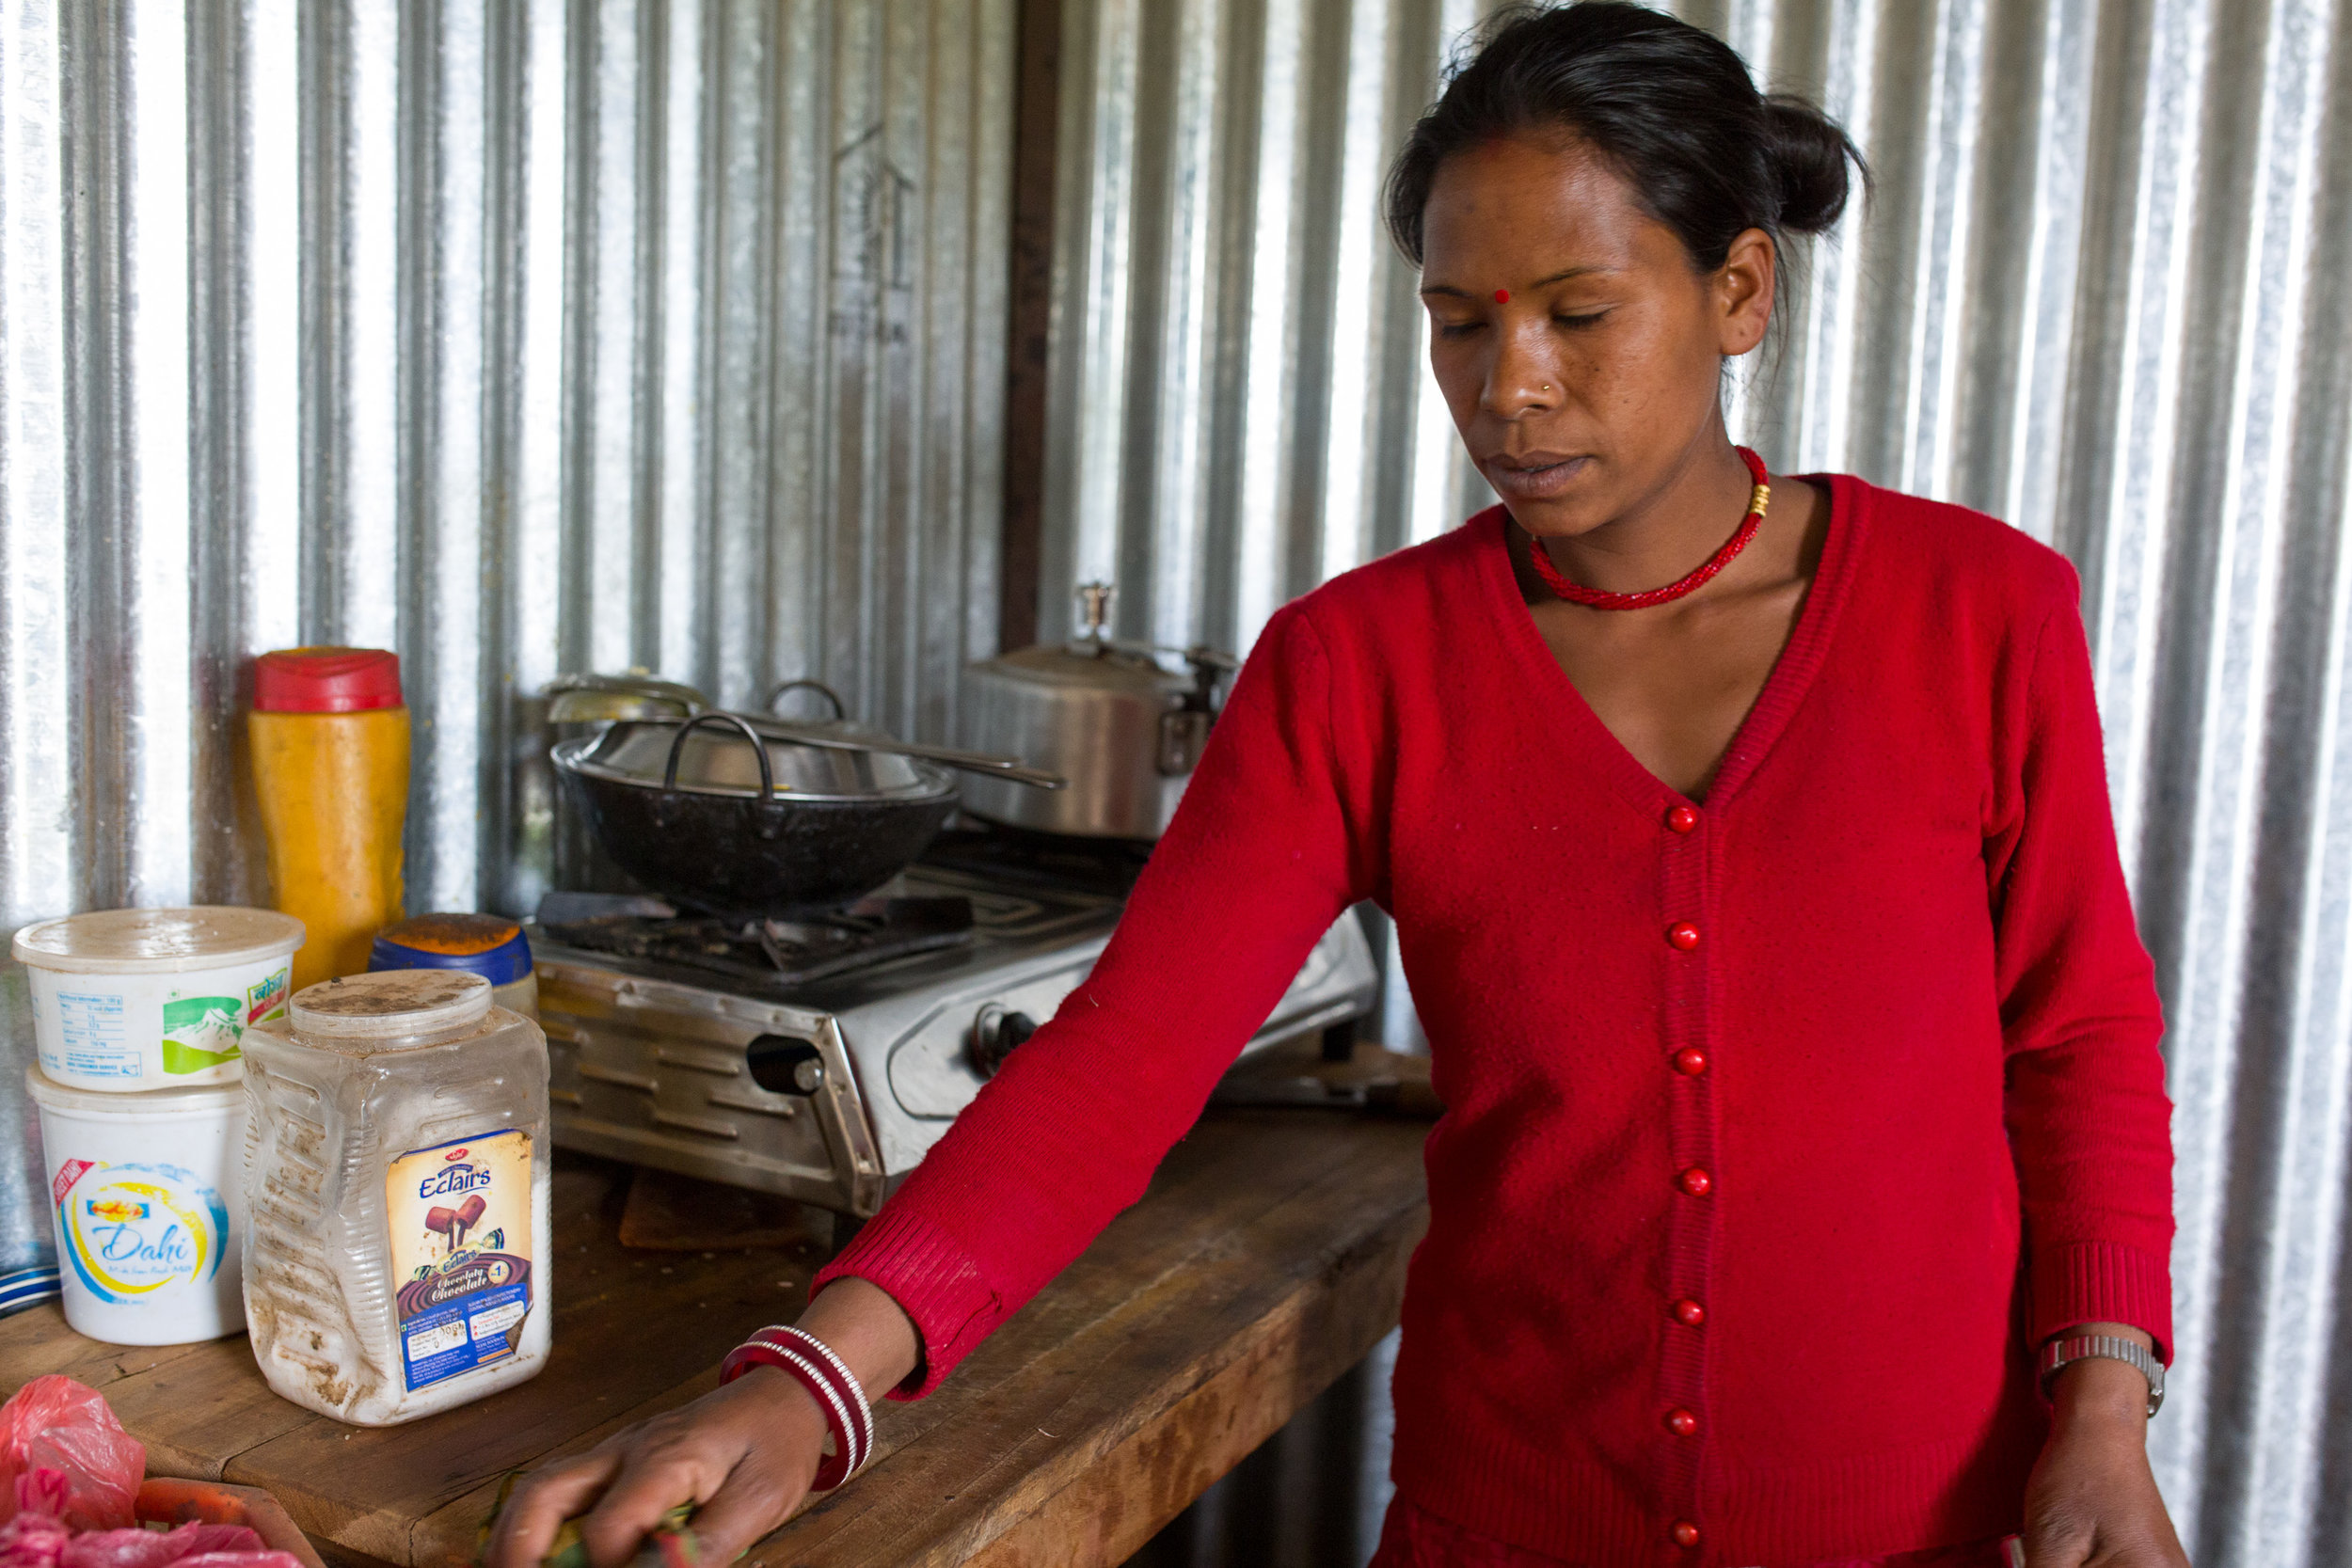 Niru washes up in her kitchen. She has no education, no identity papers and she doesn't own the land her house is built on. As a result, she doesn't think she can get access to government cash grants for a new house.